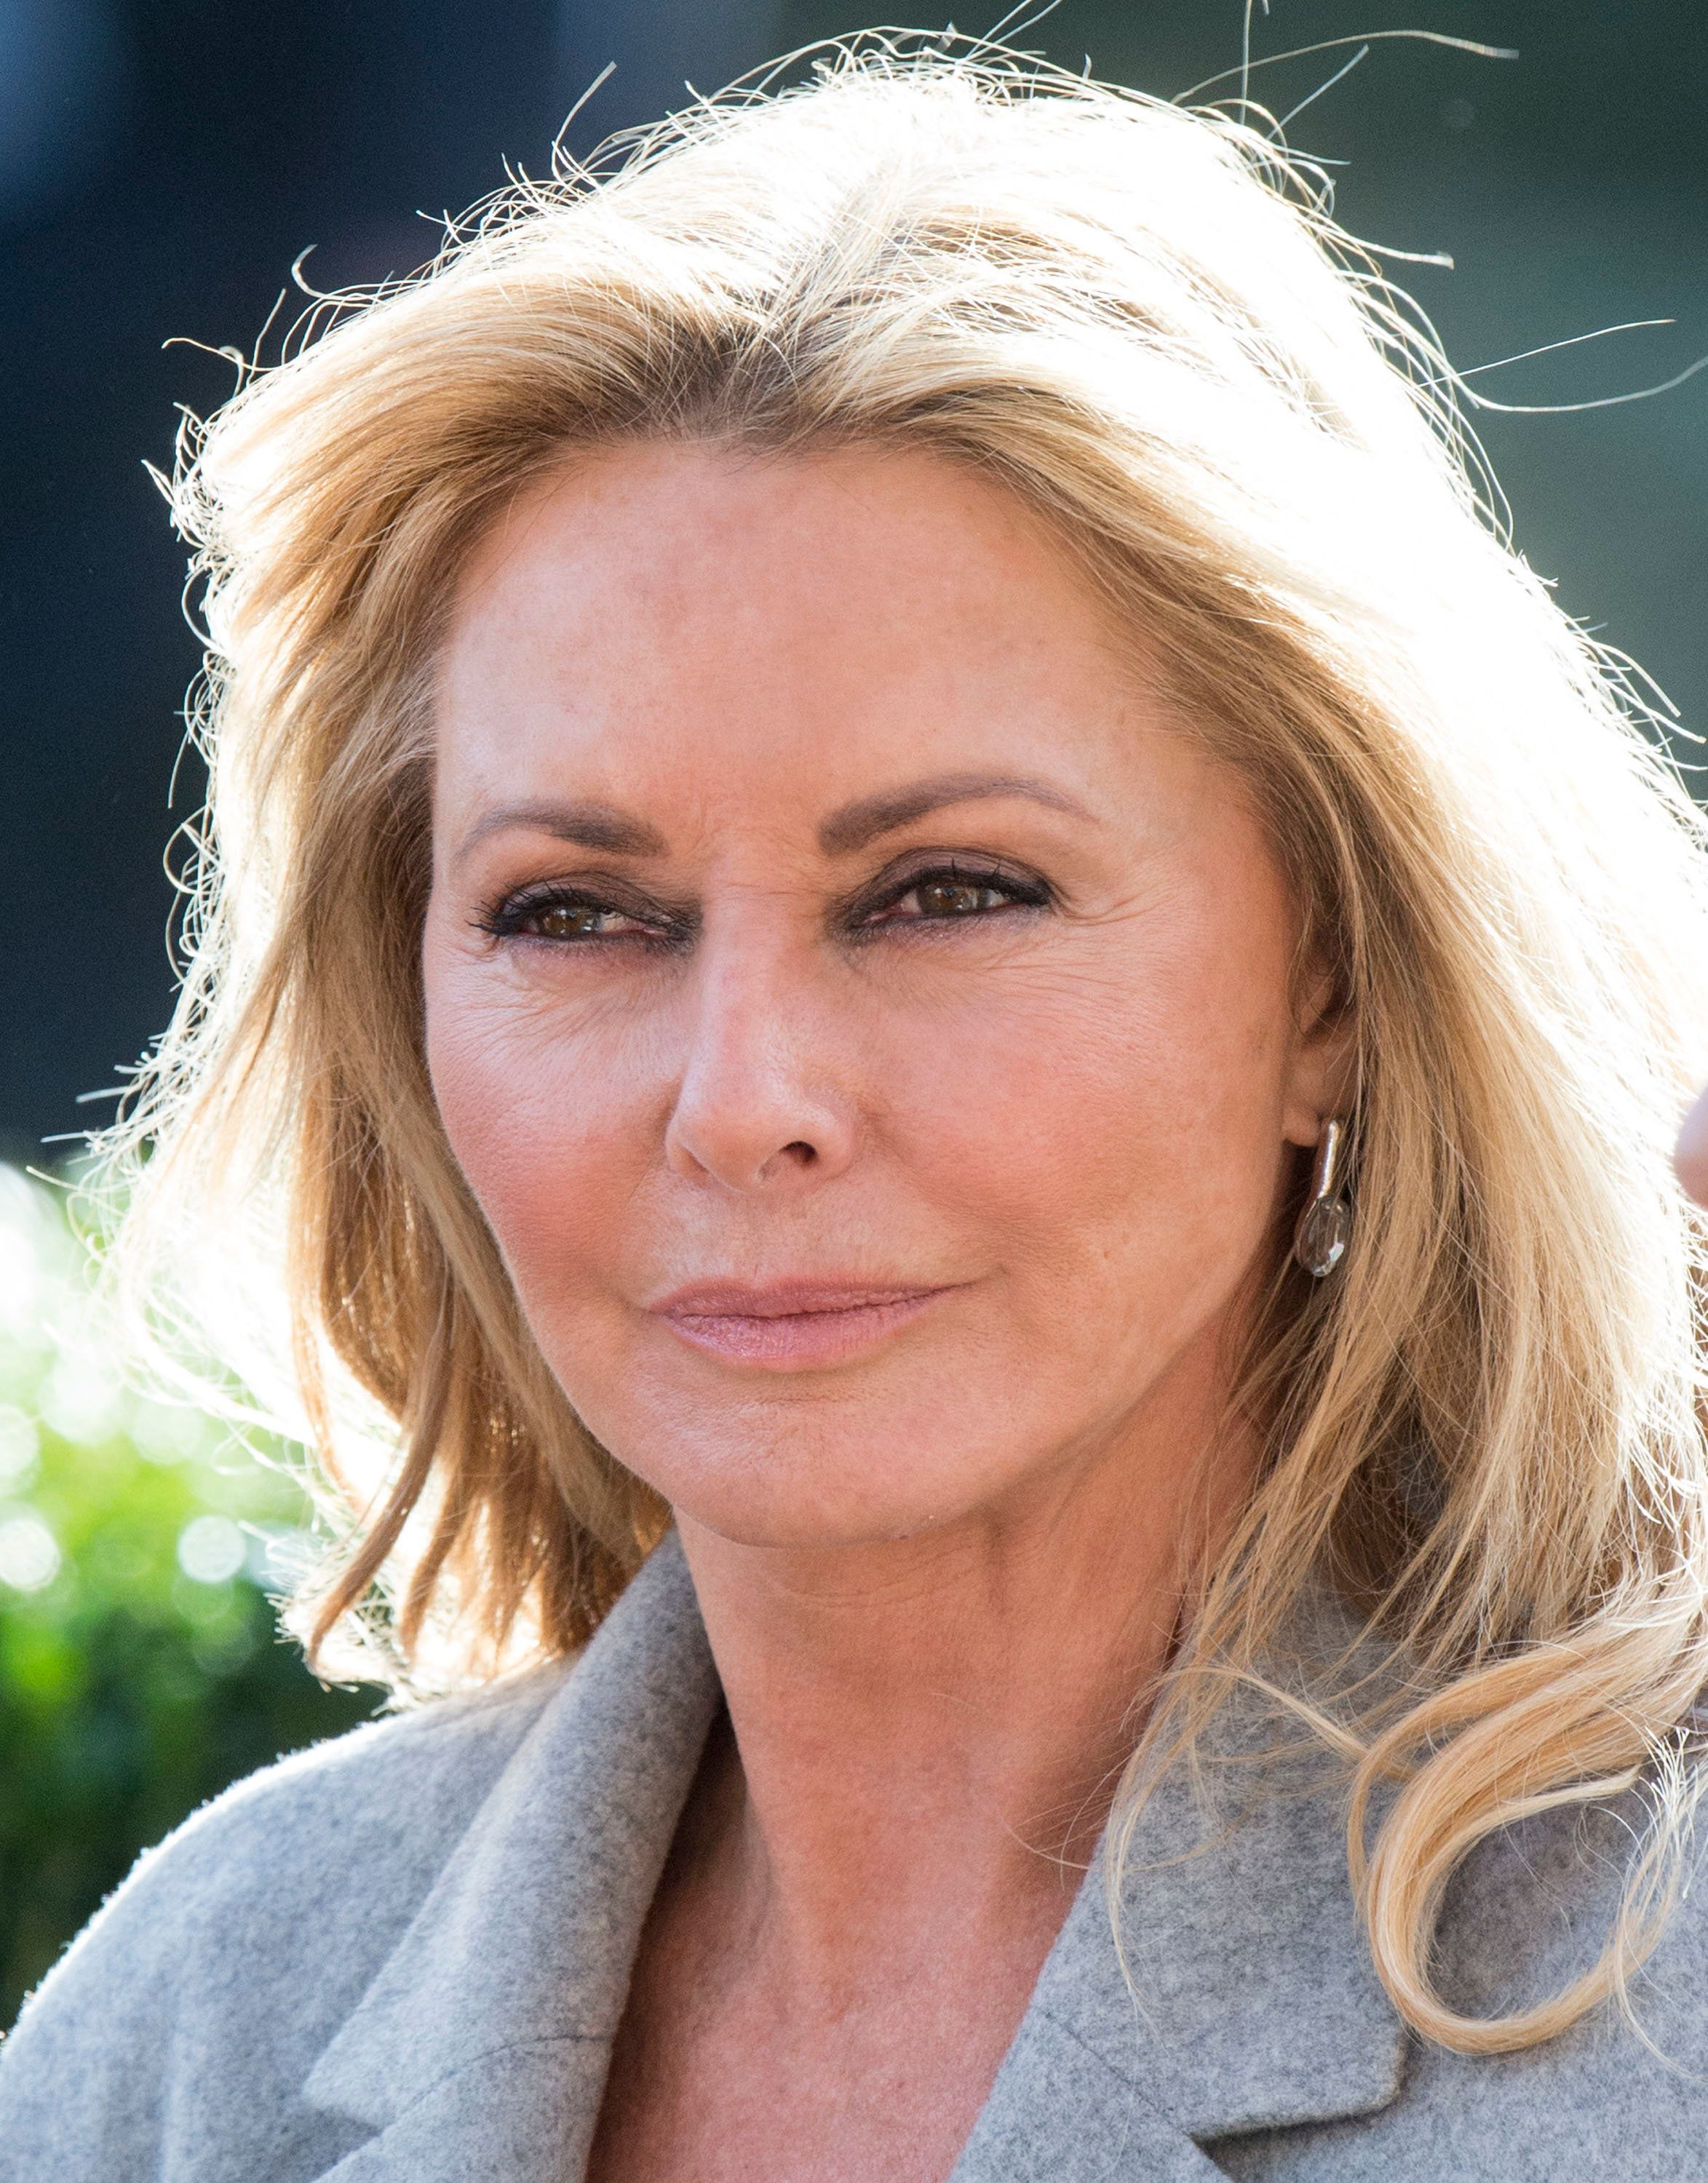 Carol Vorderman Reveals She Felt 'Suicidal' Following The Death Of Her Mother And Onset Of The